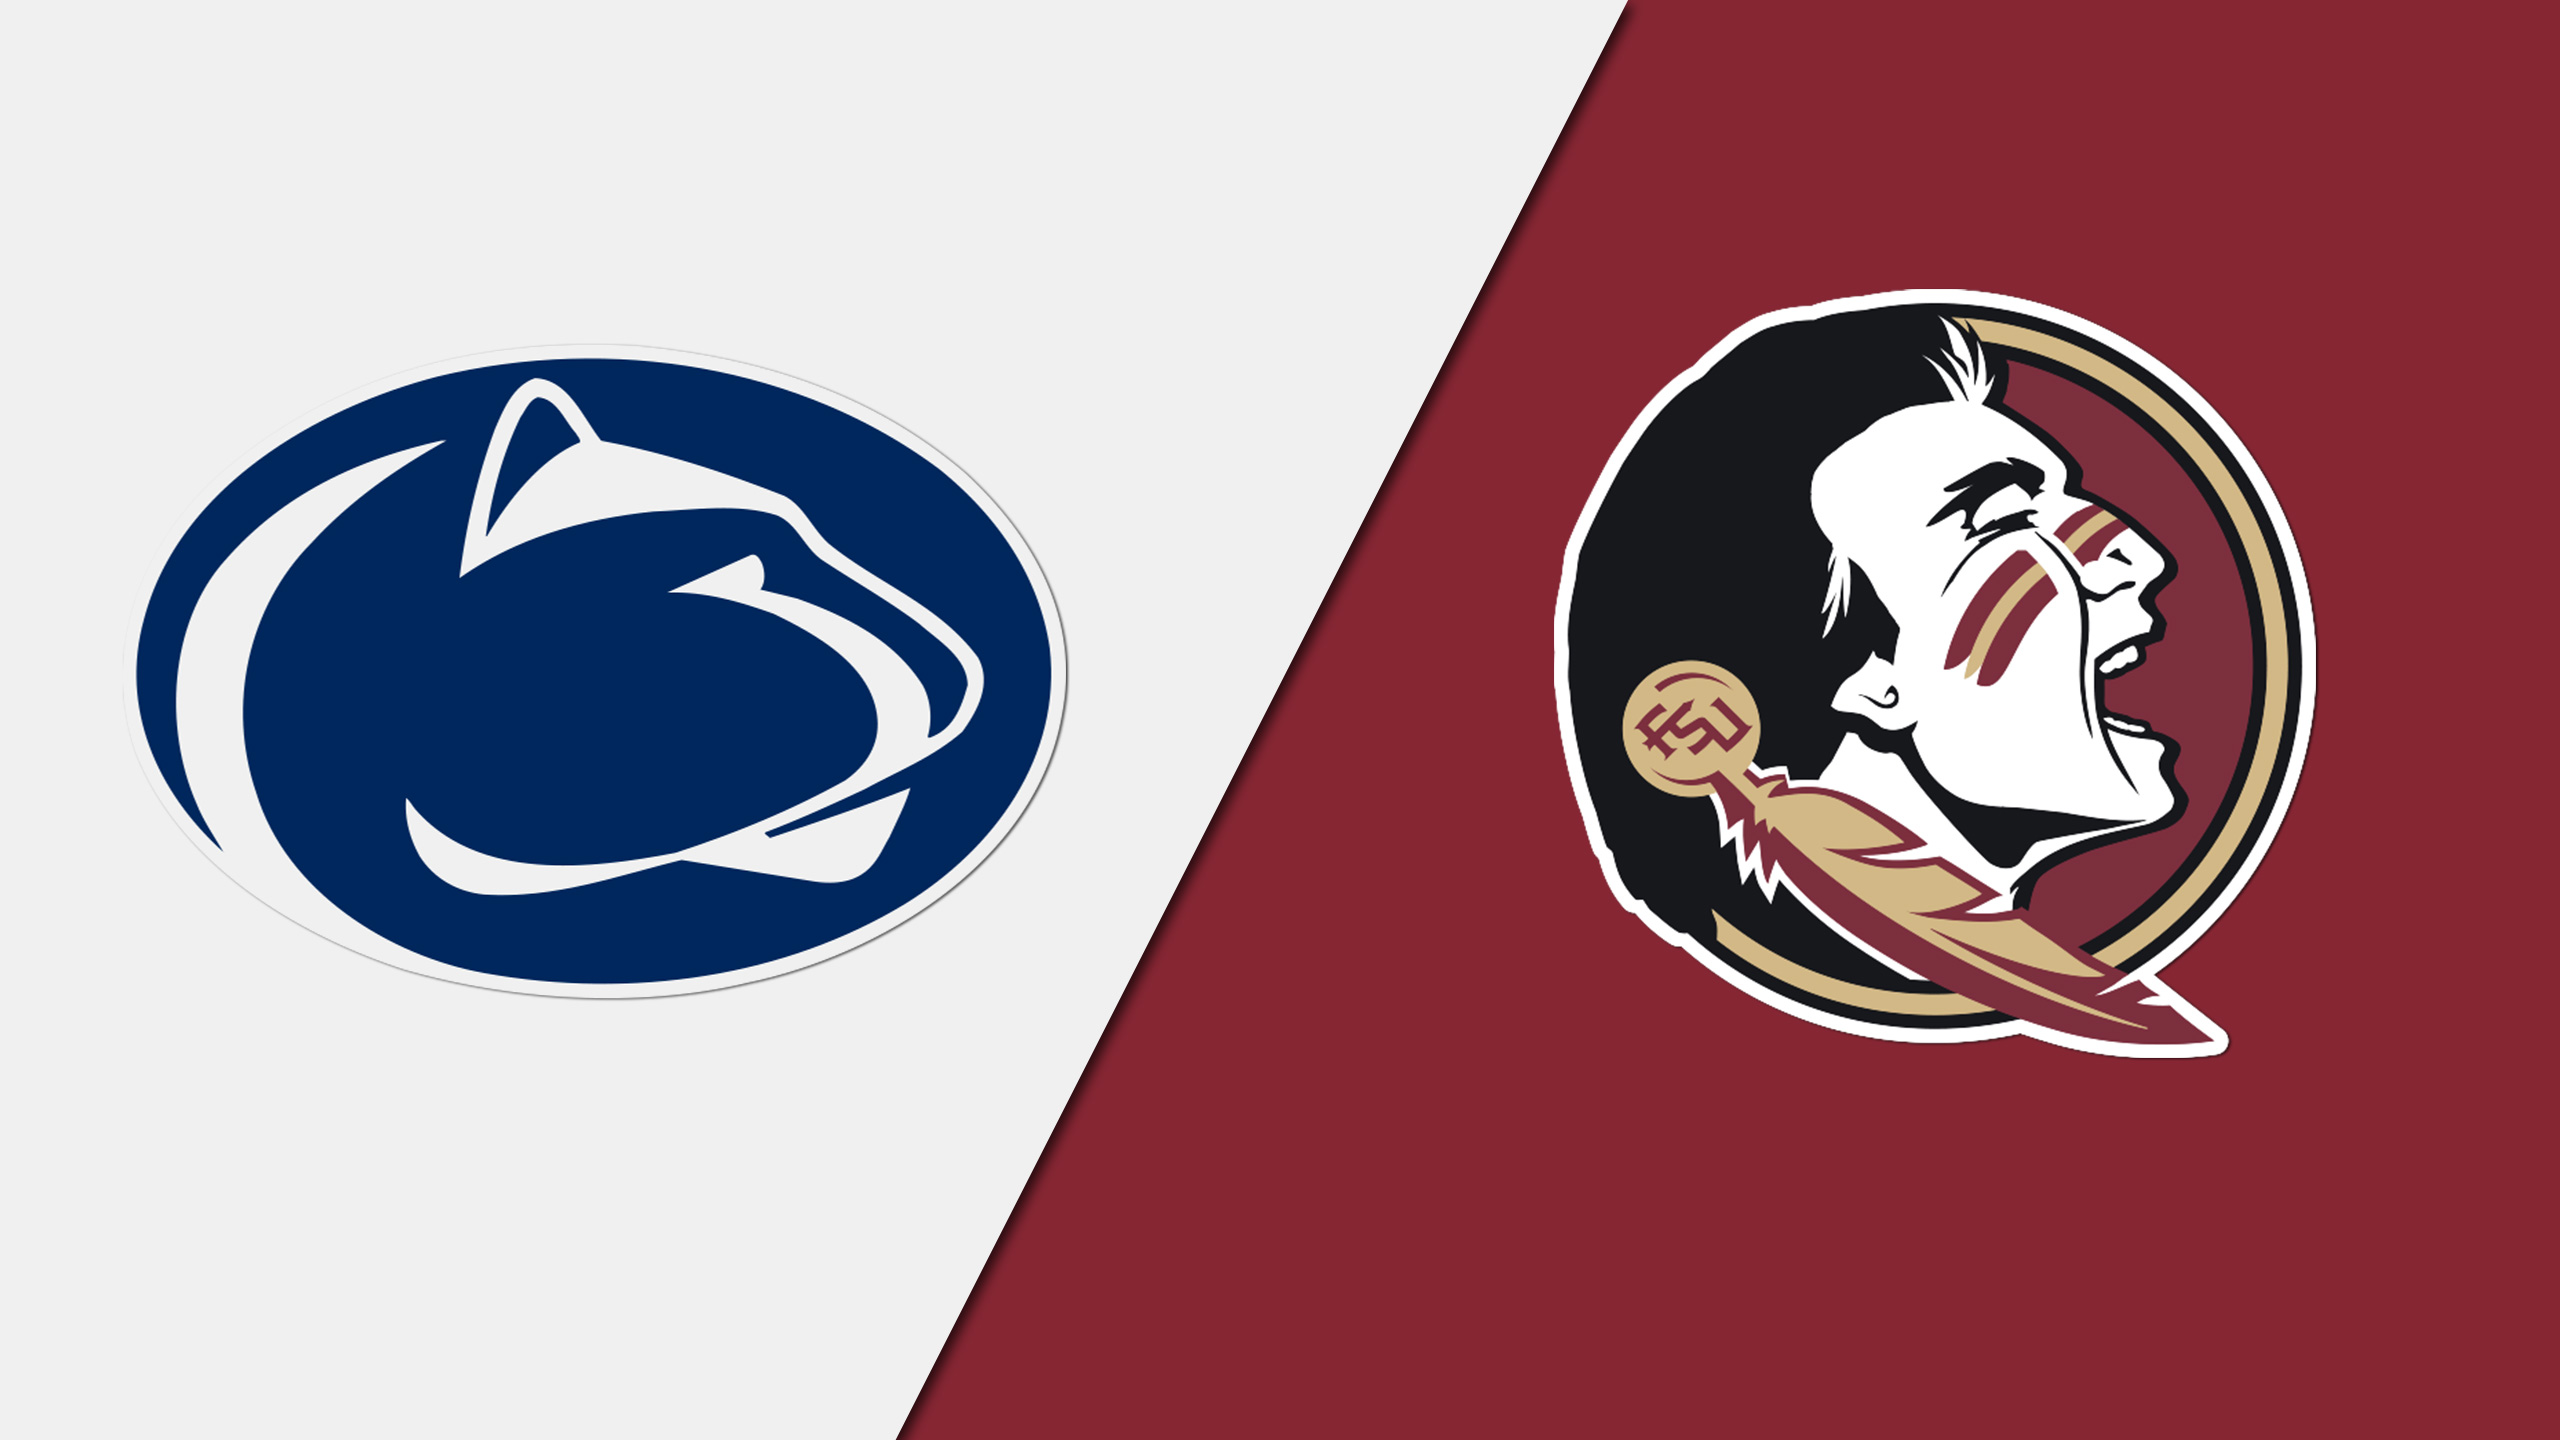 Penn State vs. Florida State (W Basketball)